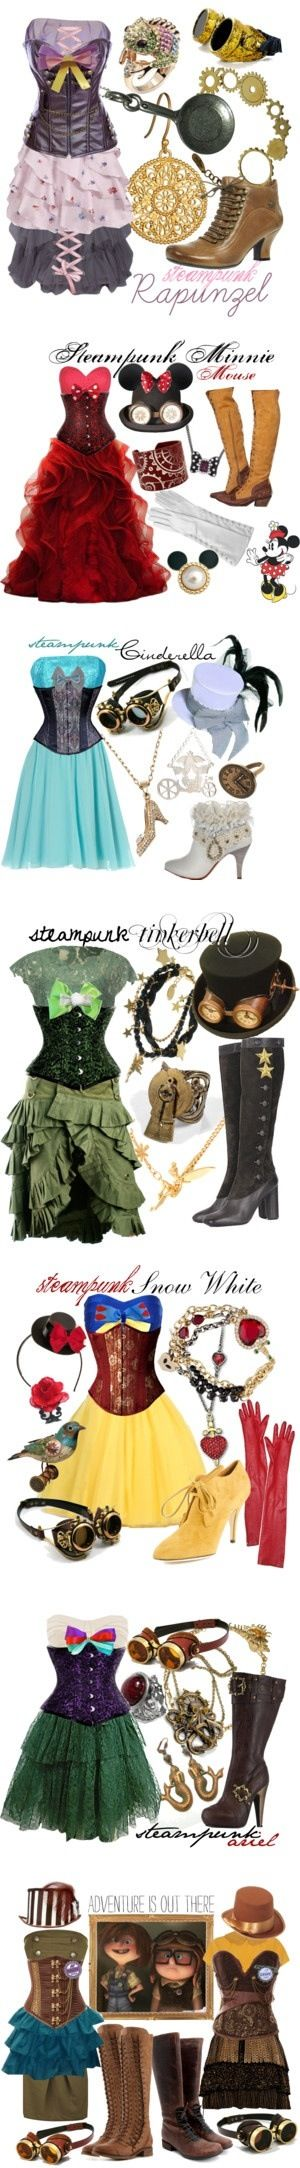 Fashion/Disney Steampunk style Inspiration <3 Someday Imma make Leigh and Myself steampunk disney princess costumes :p